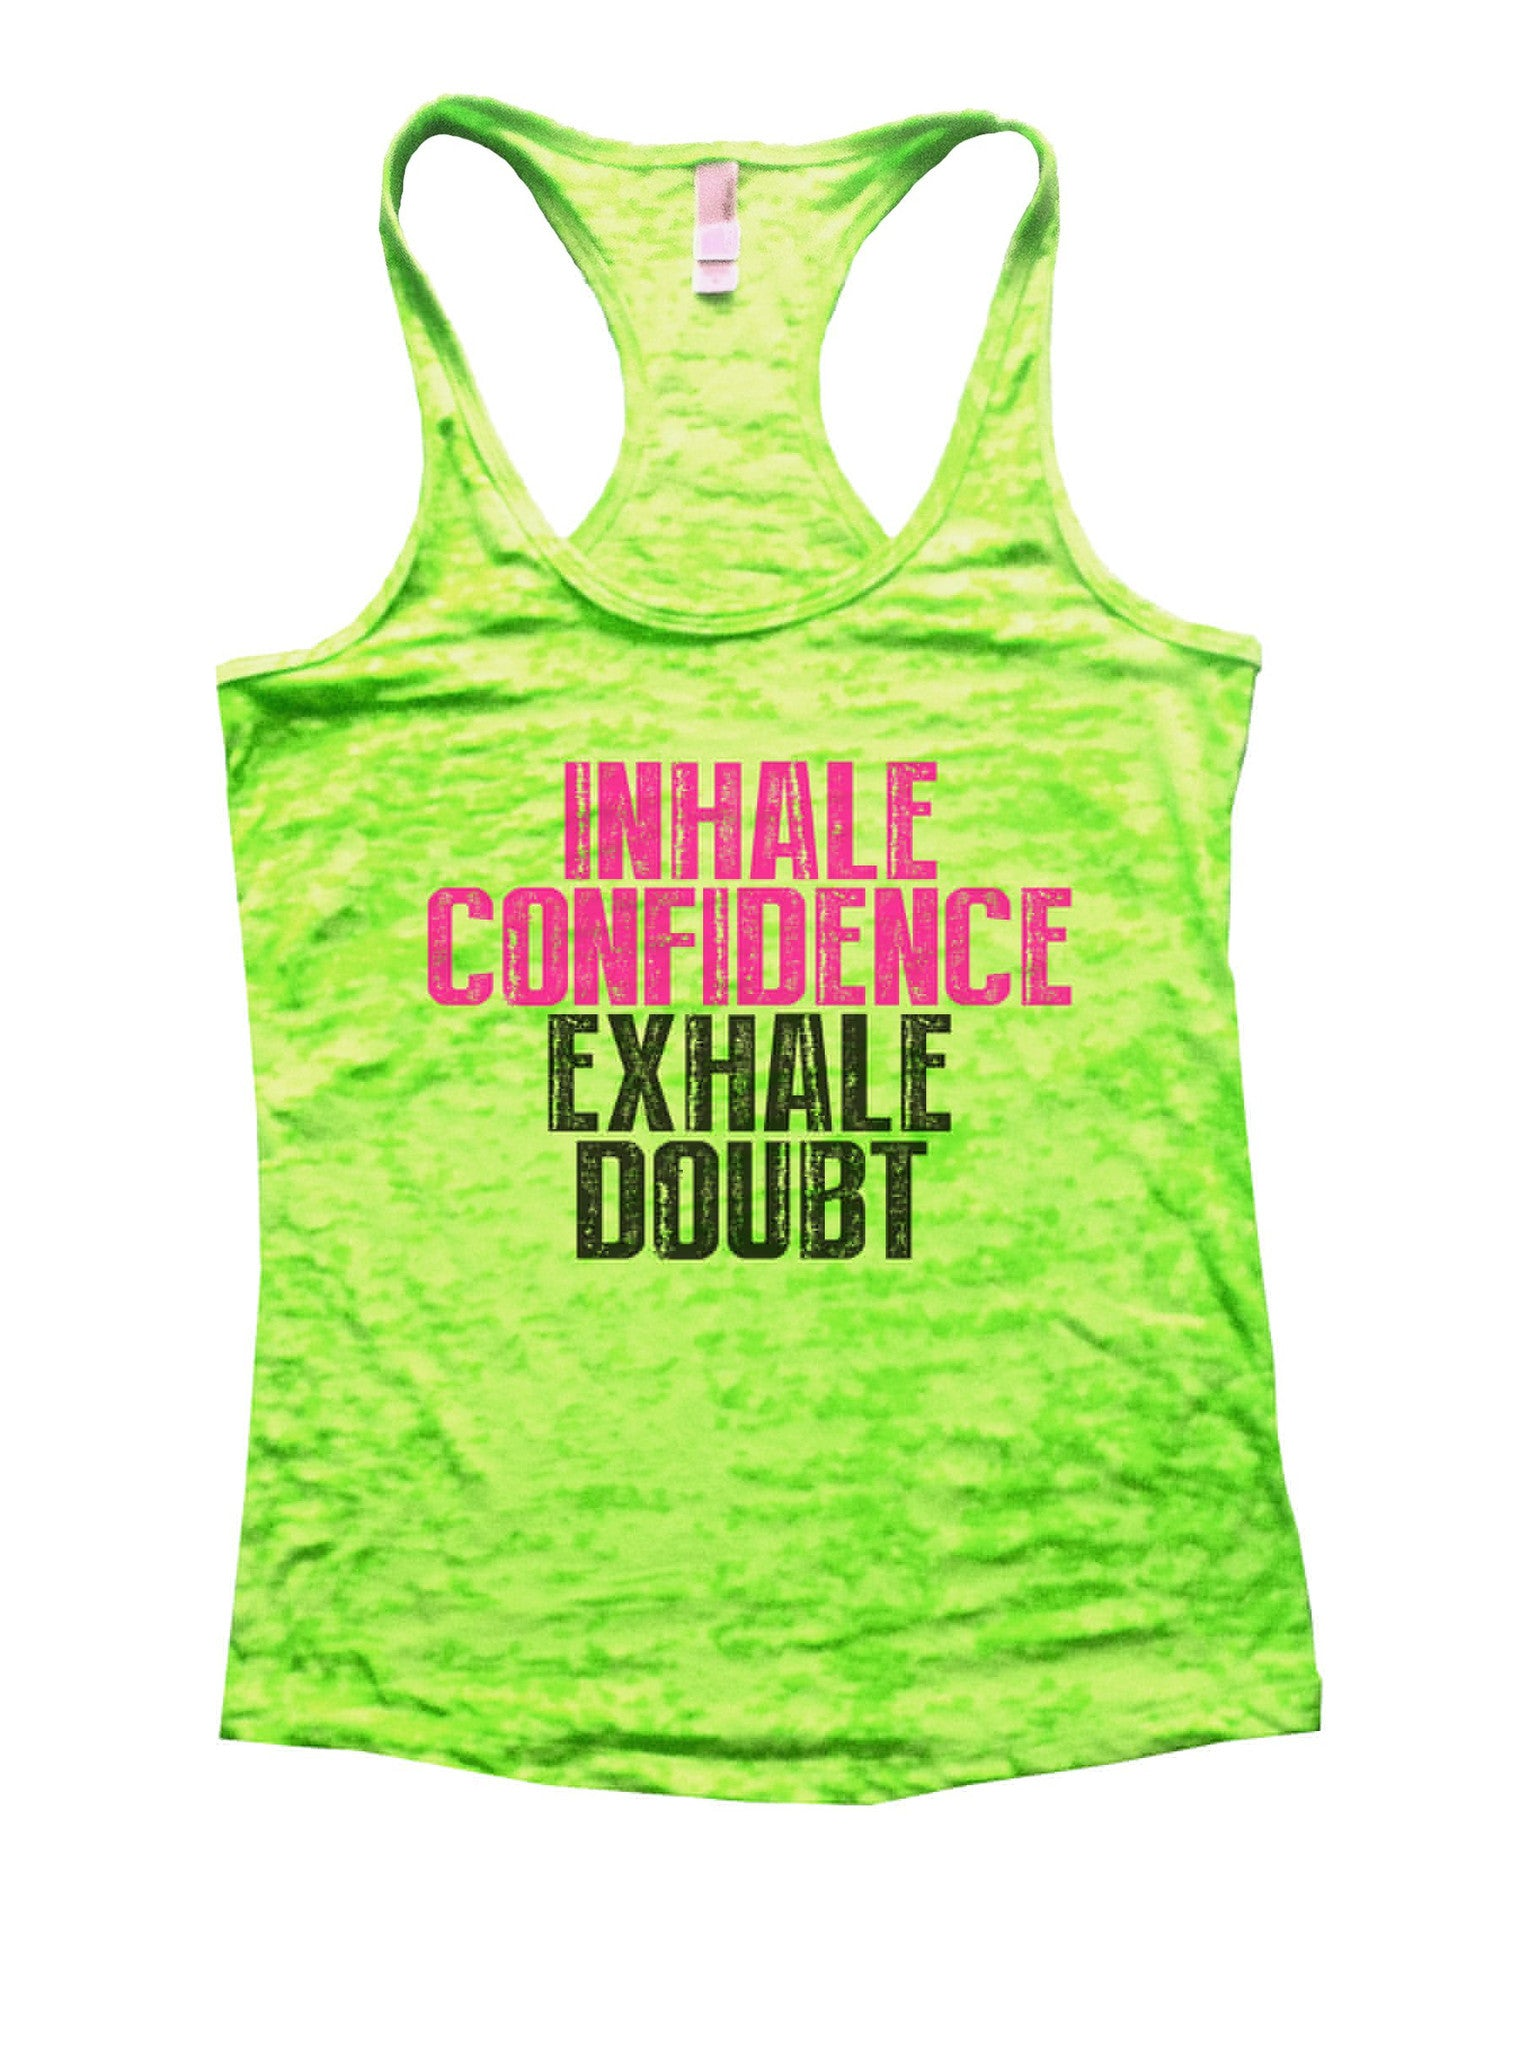 Inhale Confidence Exhale Doubt Burnout Tank Top By BurnoutTankTops.com - 1021 - Funny Shirts Tank Tops Burnouts and Triblends  - 1